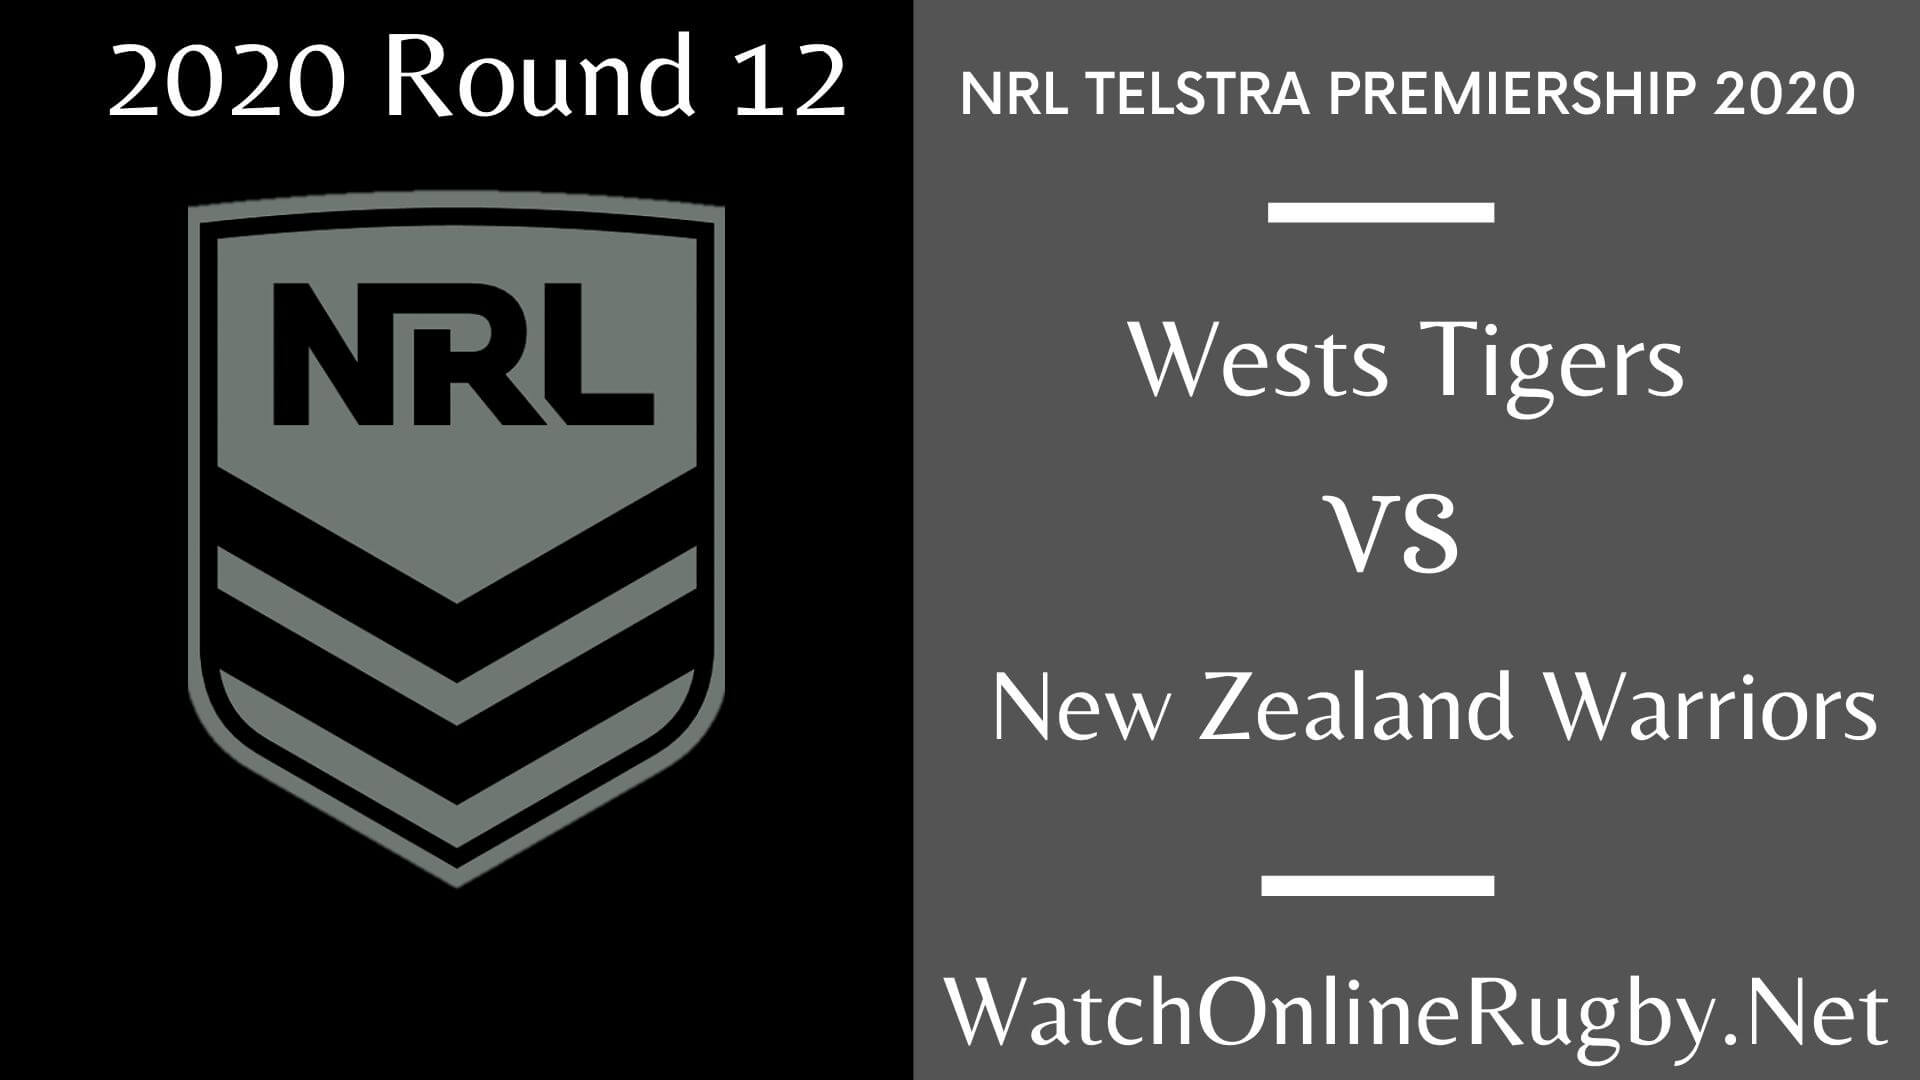 Wests Tigers Vs Warriors Highlights 2020 Round 12 Nrl Rugby